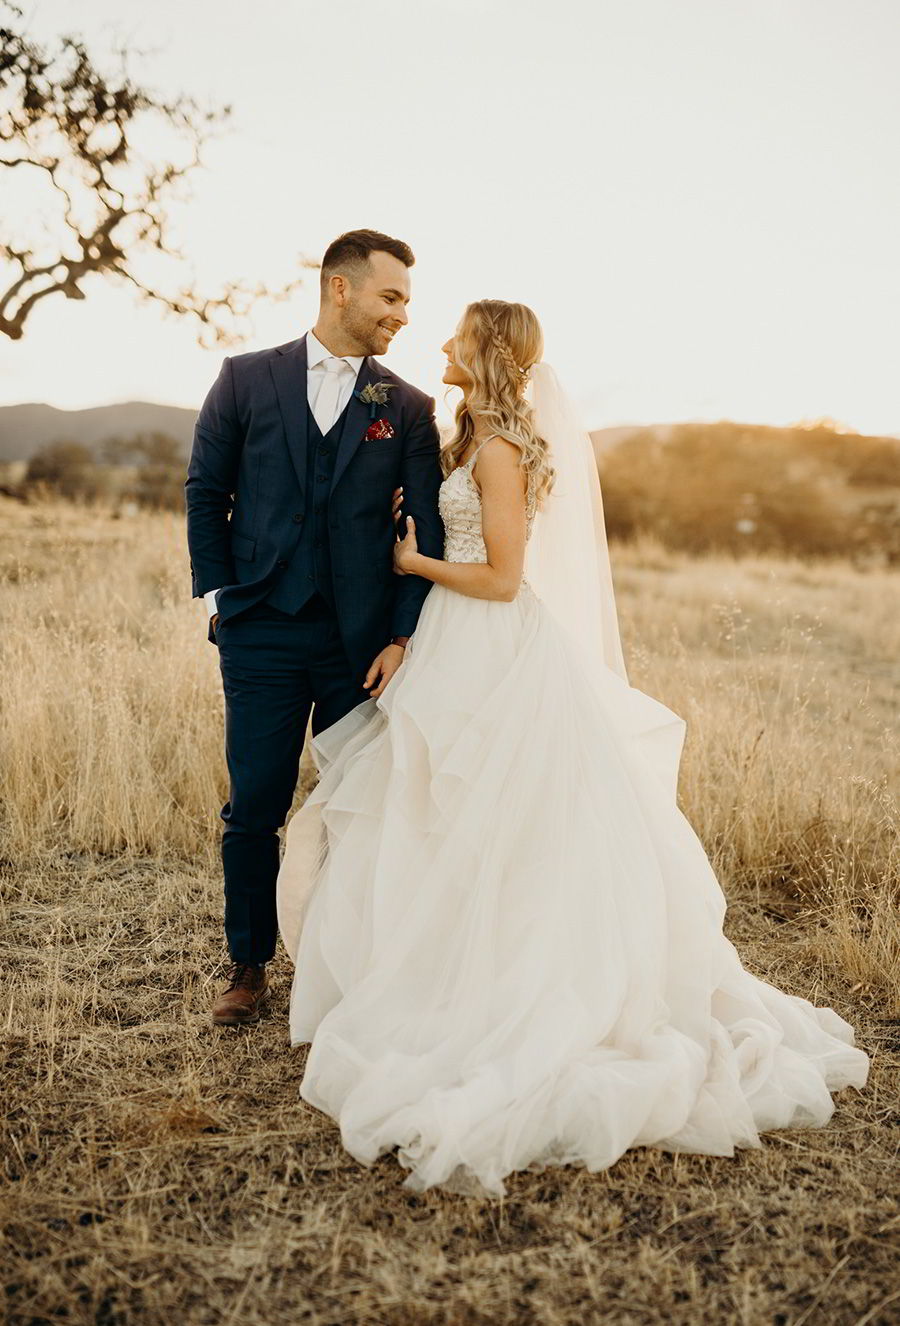 sottero midgley 2018  gold dress (amelie) sleeveless illusion vneck ball gown wedding dress colegarrettphotography photo bride melissa navy suit groom mv